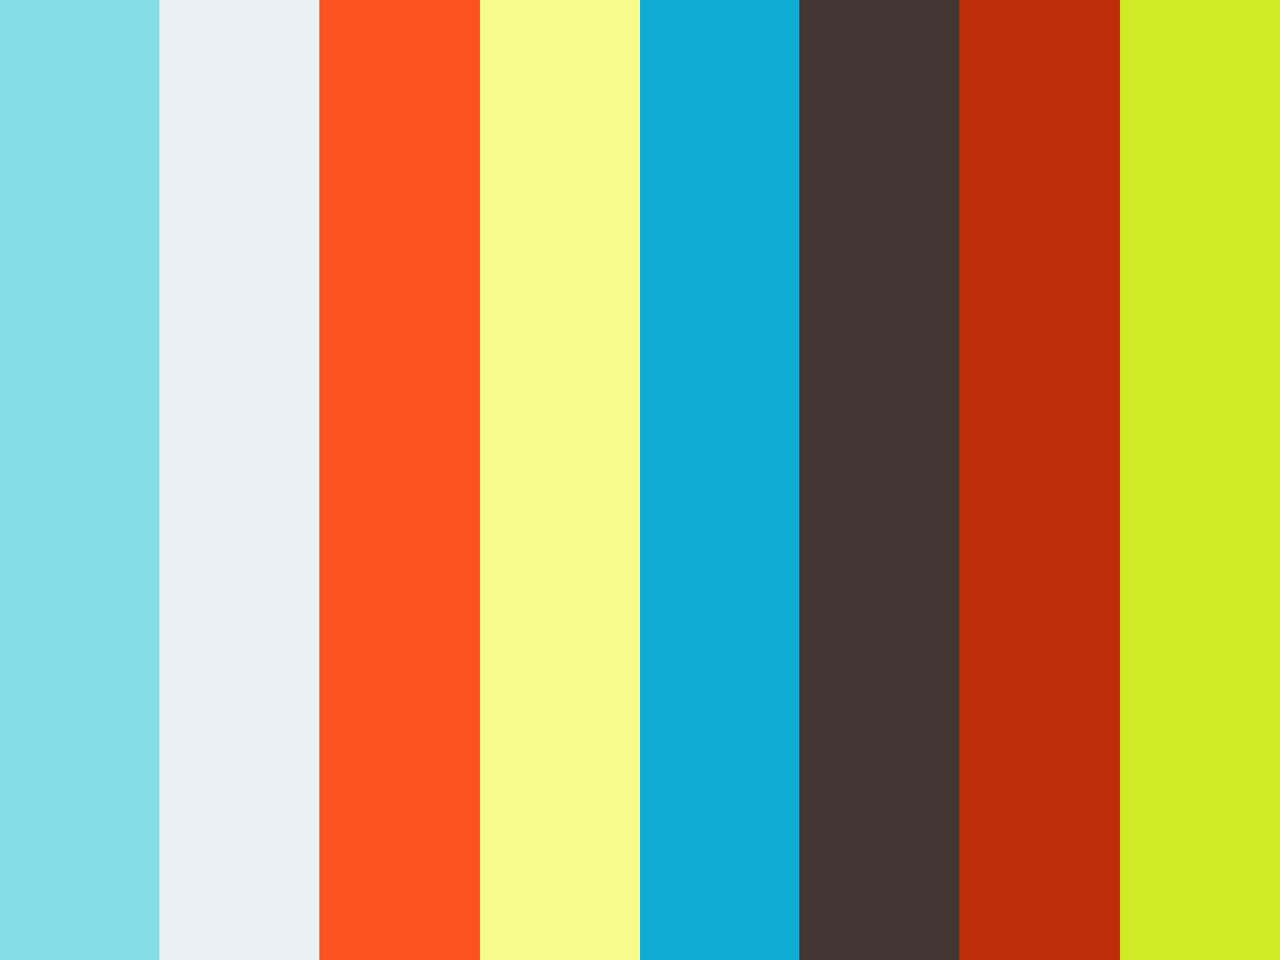 Fishbone (2) - Jazz Fest. 2005